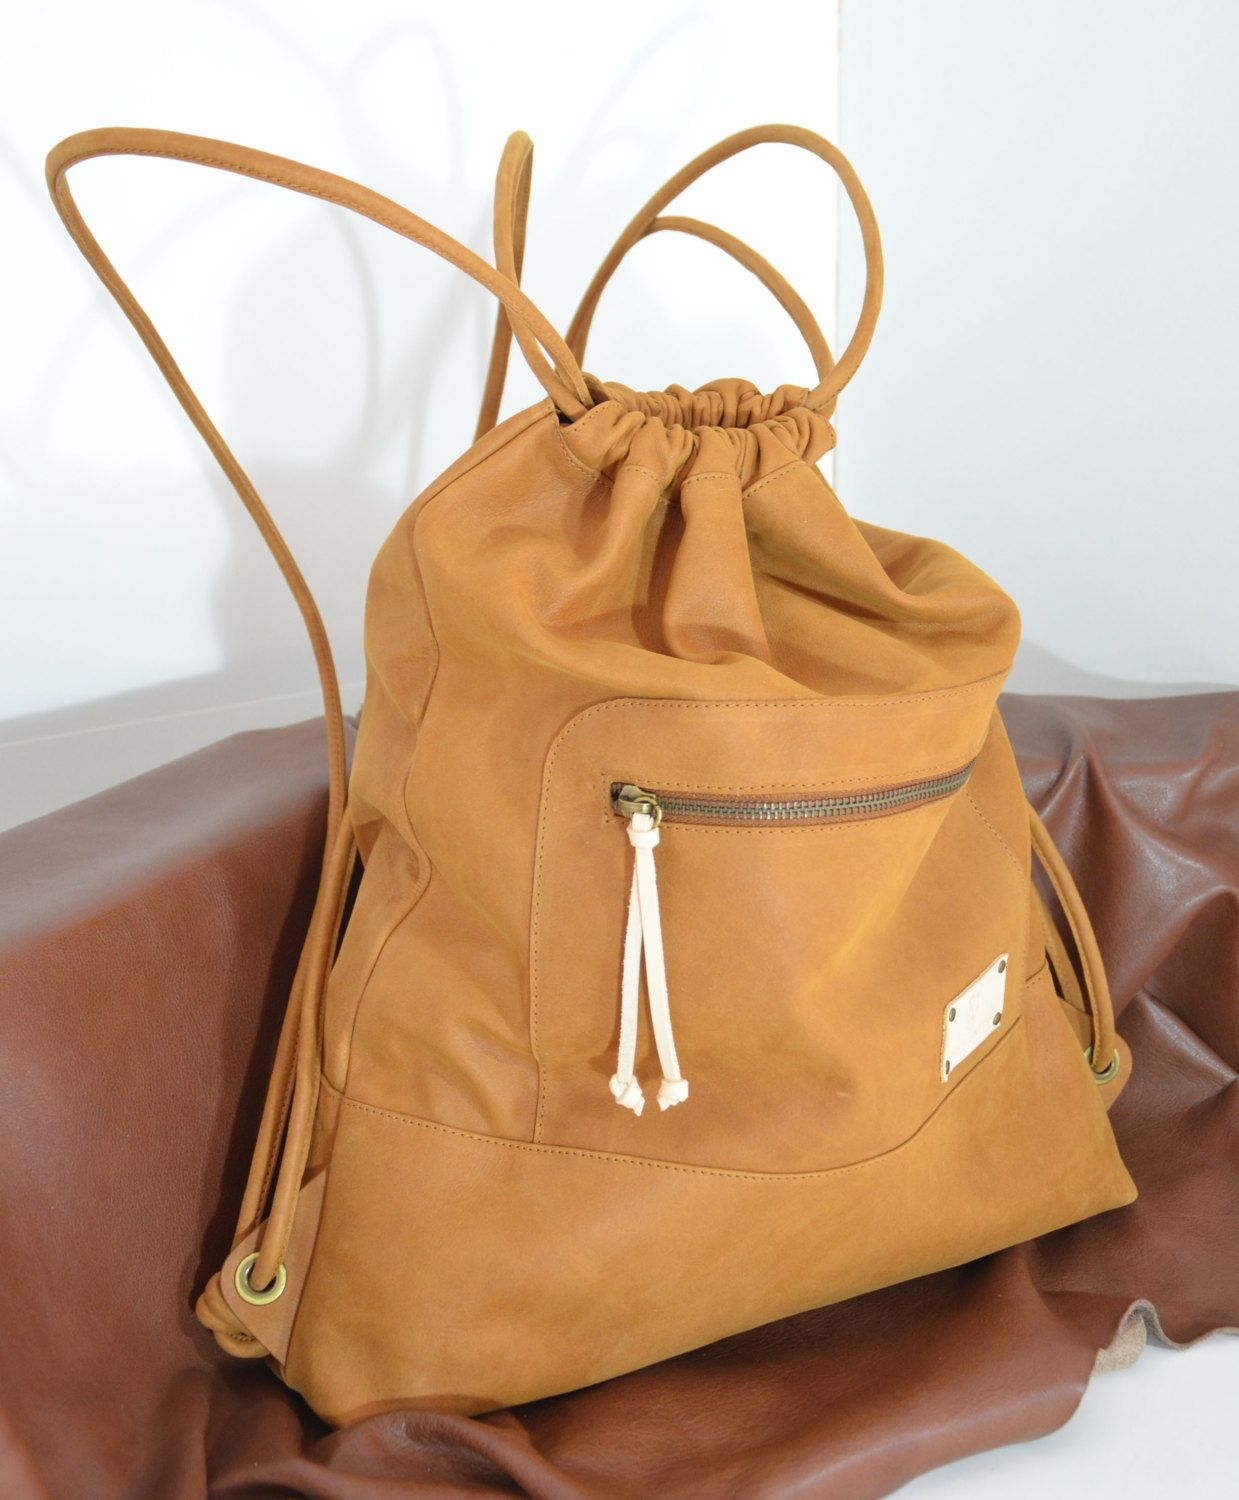 Excepcional Brown Leather Backpack,Leather Sack Bag,Sack Backpack,Large  OE91